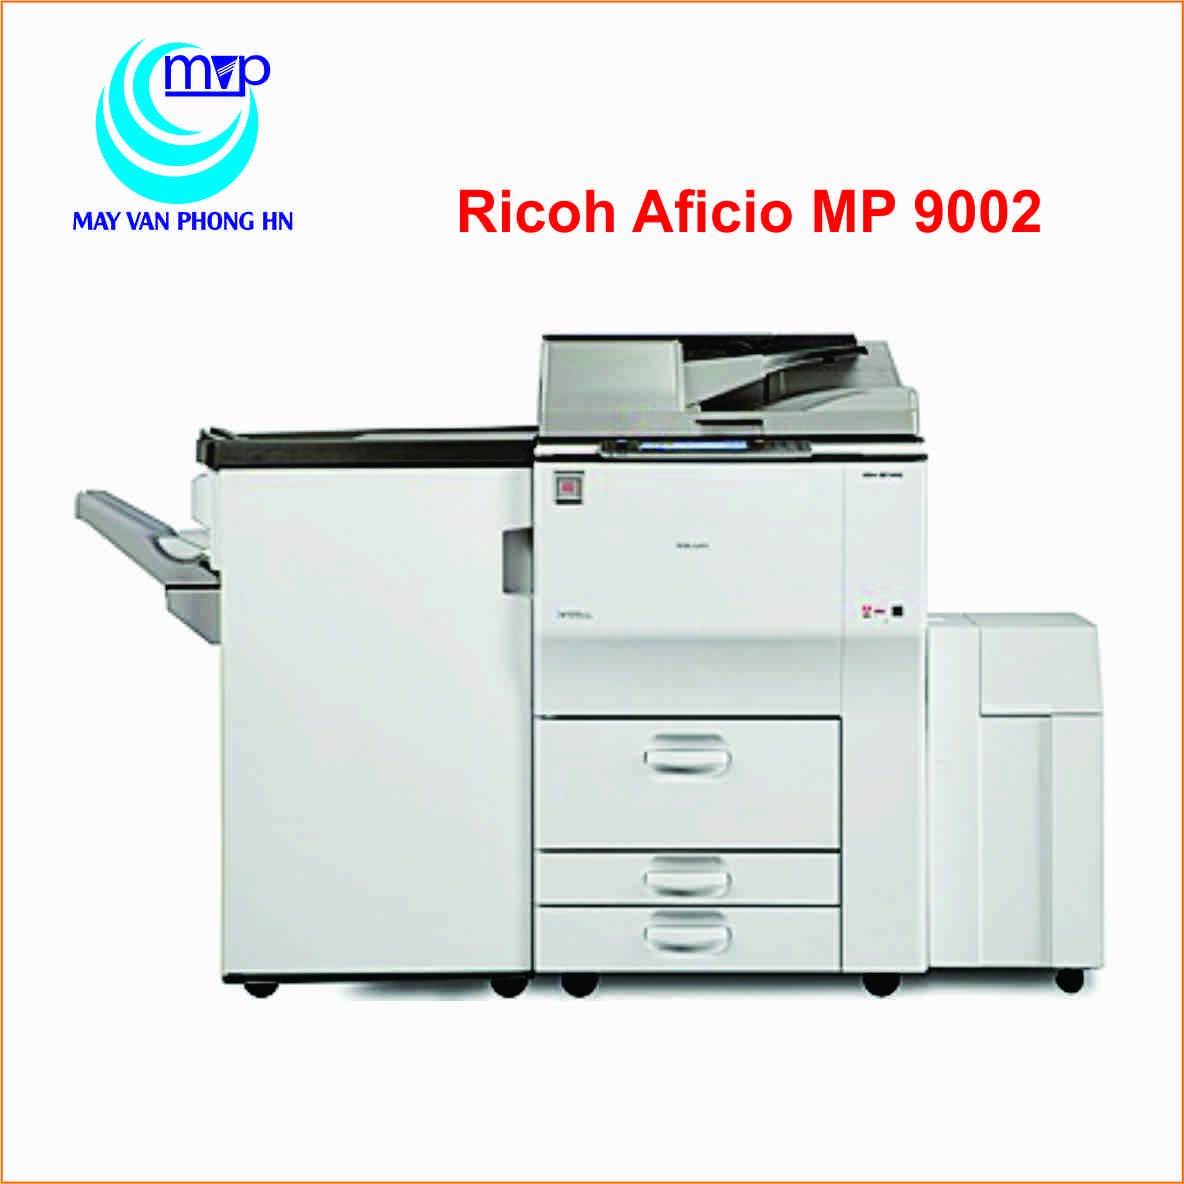 Ricoh Aficio MP 9002